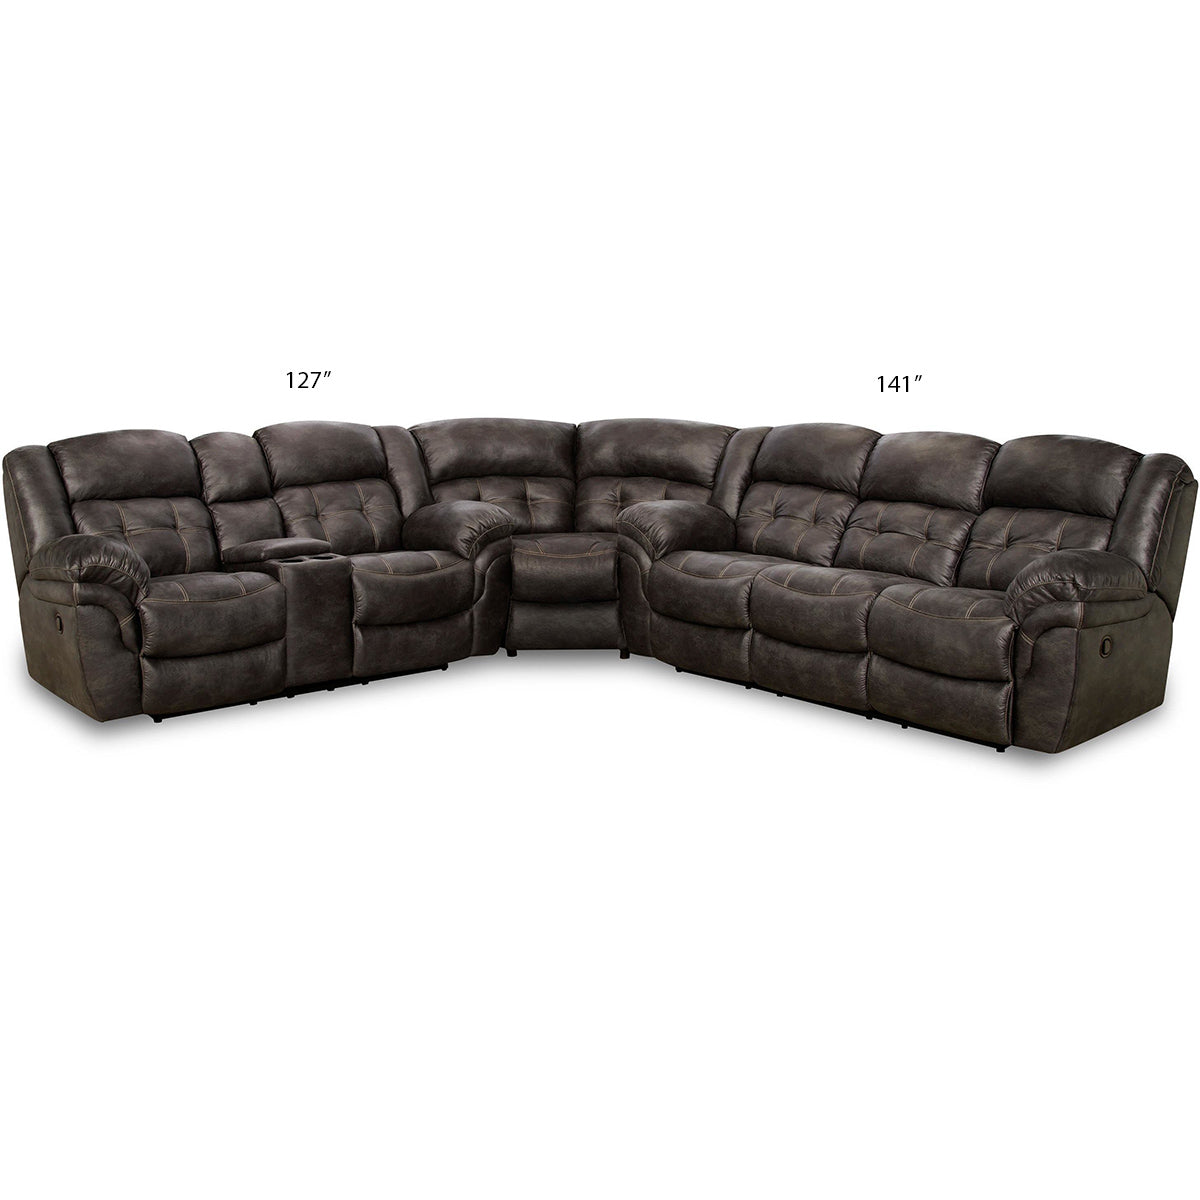 Frontier Reclining Sectional